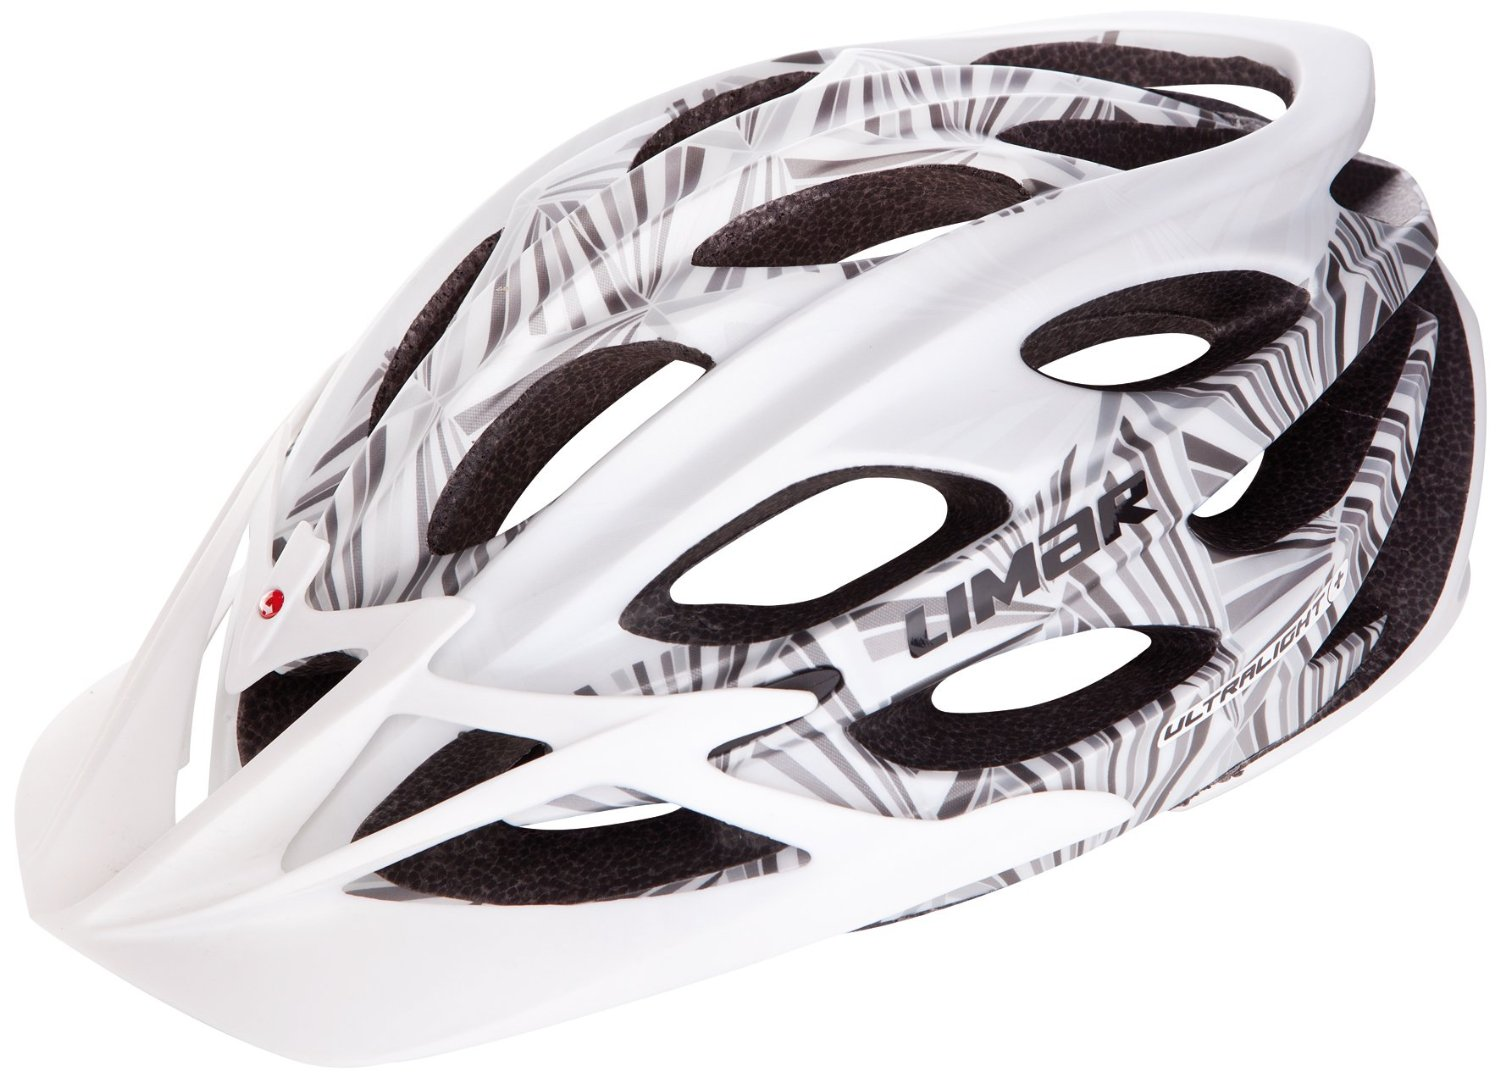 Medium Limar Bicycle Helmets